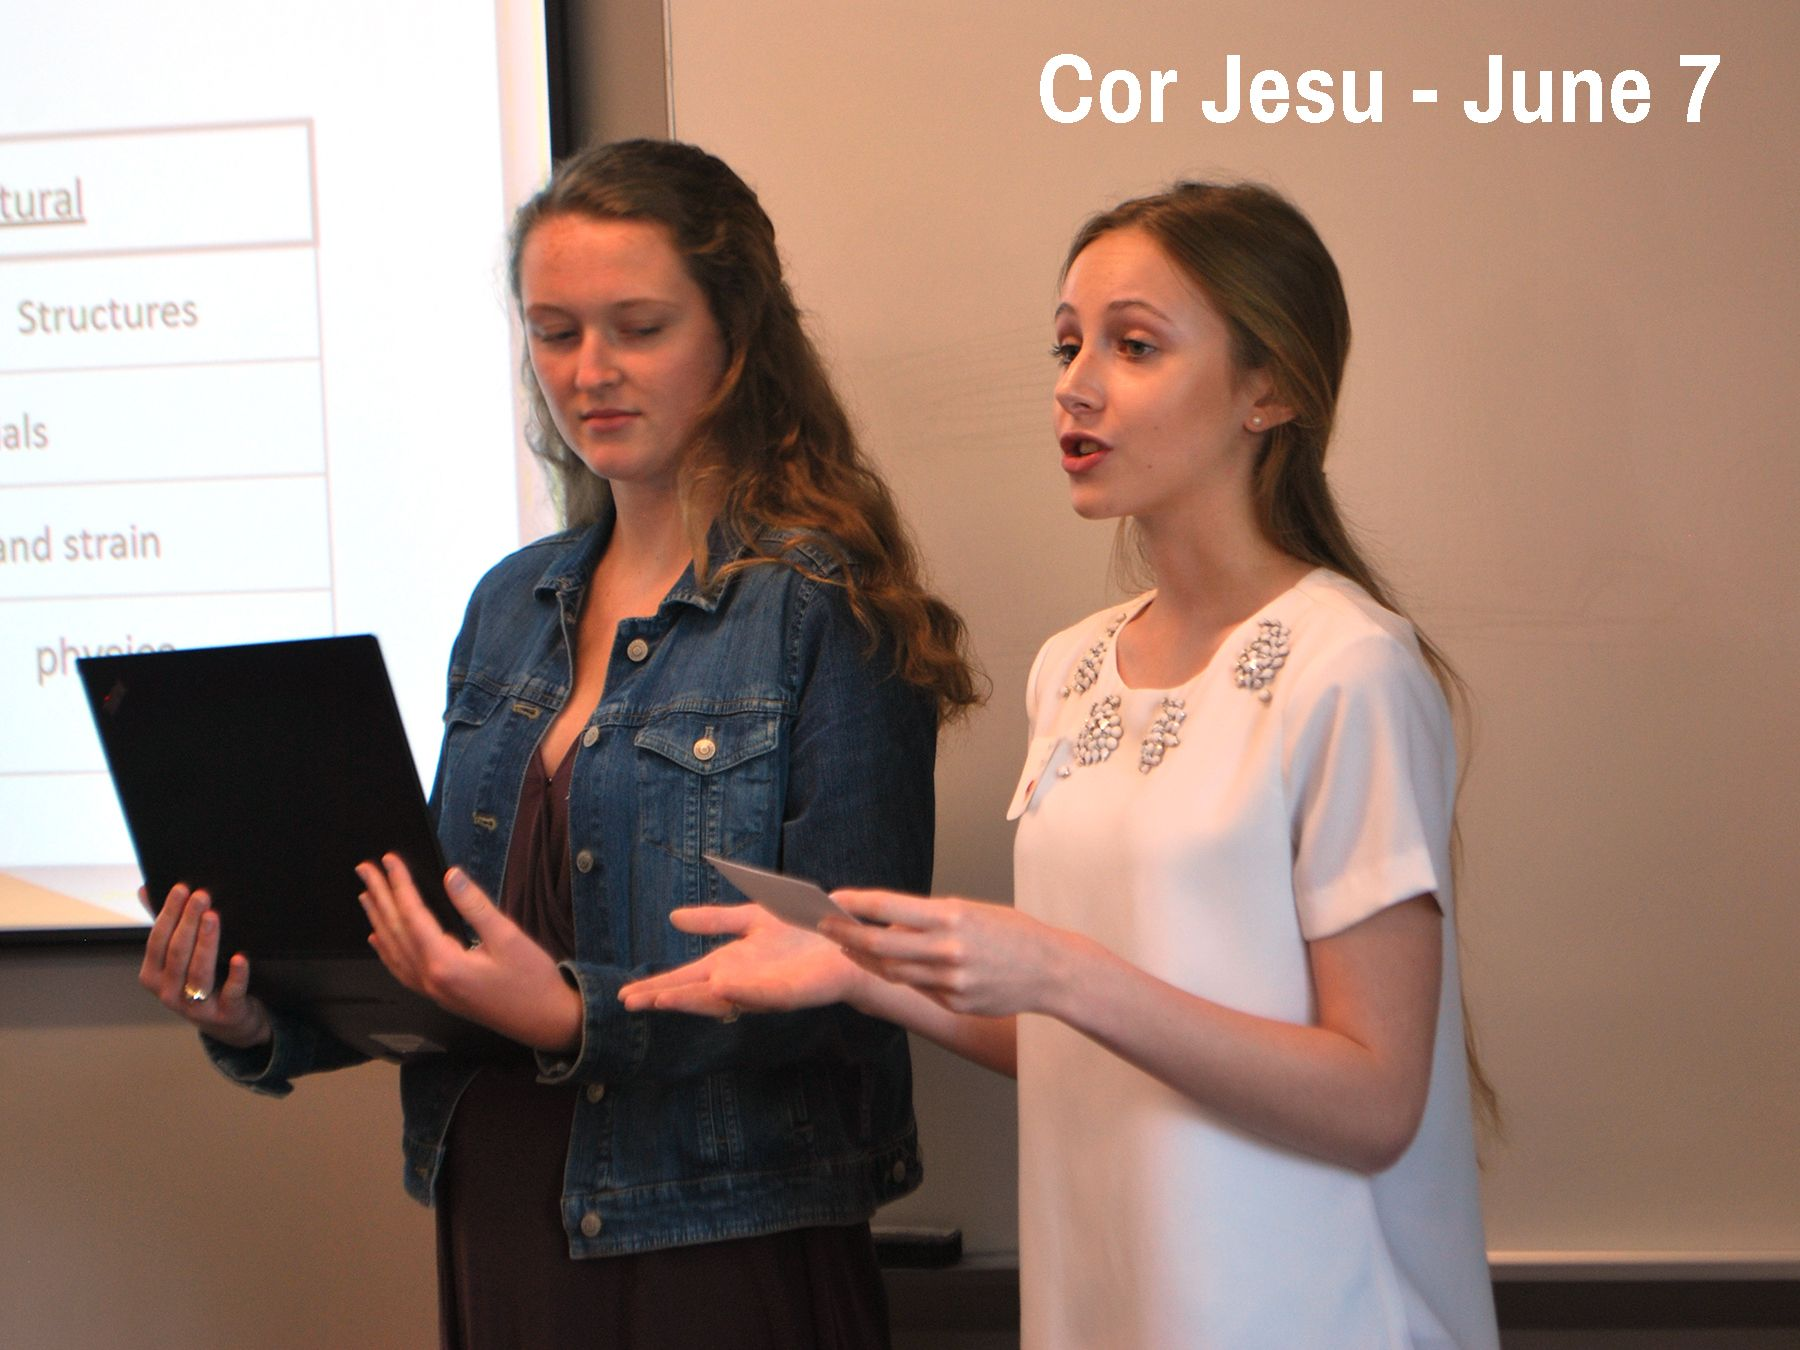 Cor Jesu students present their findings